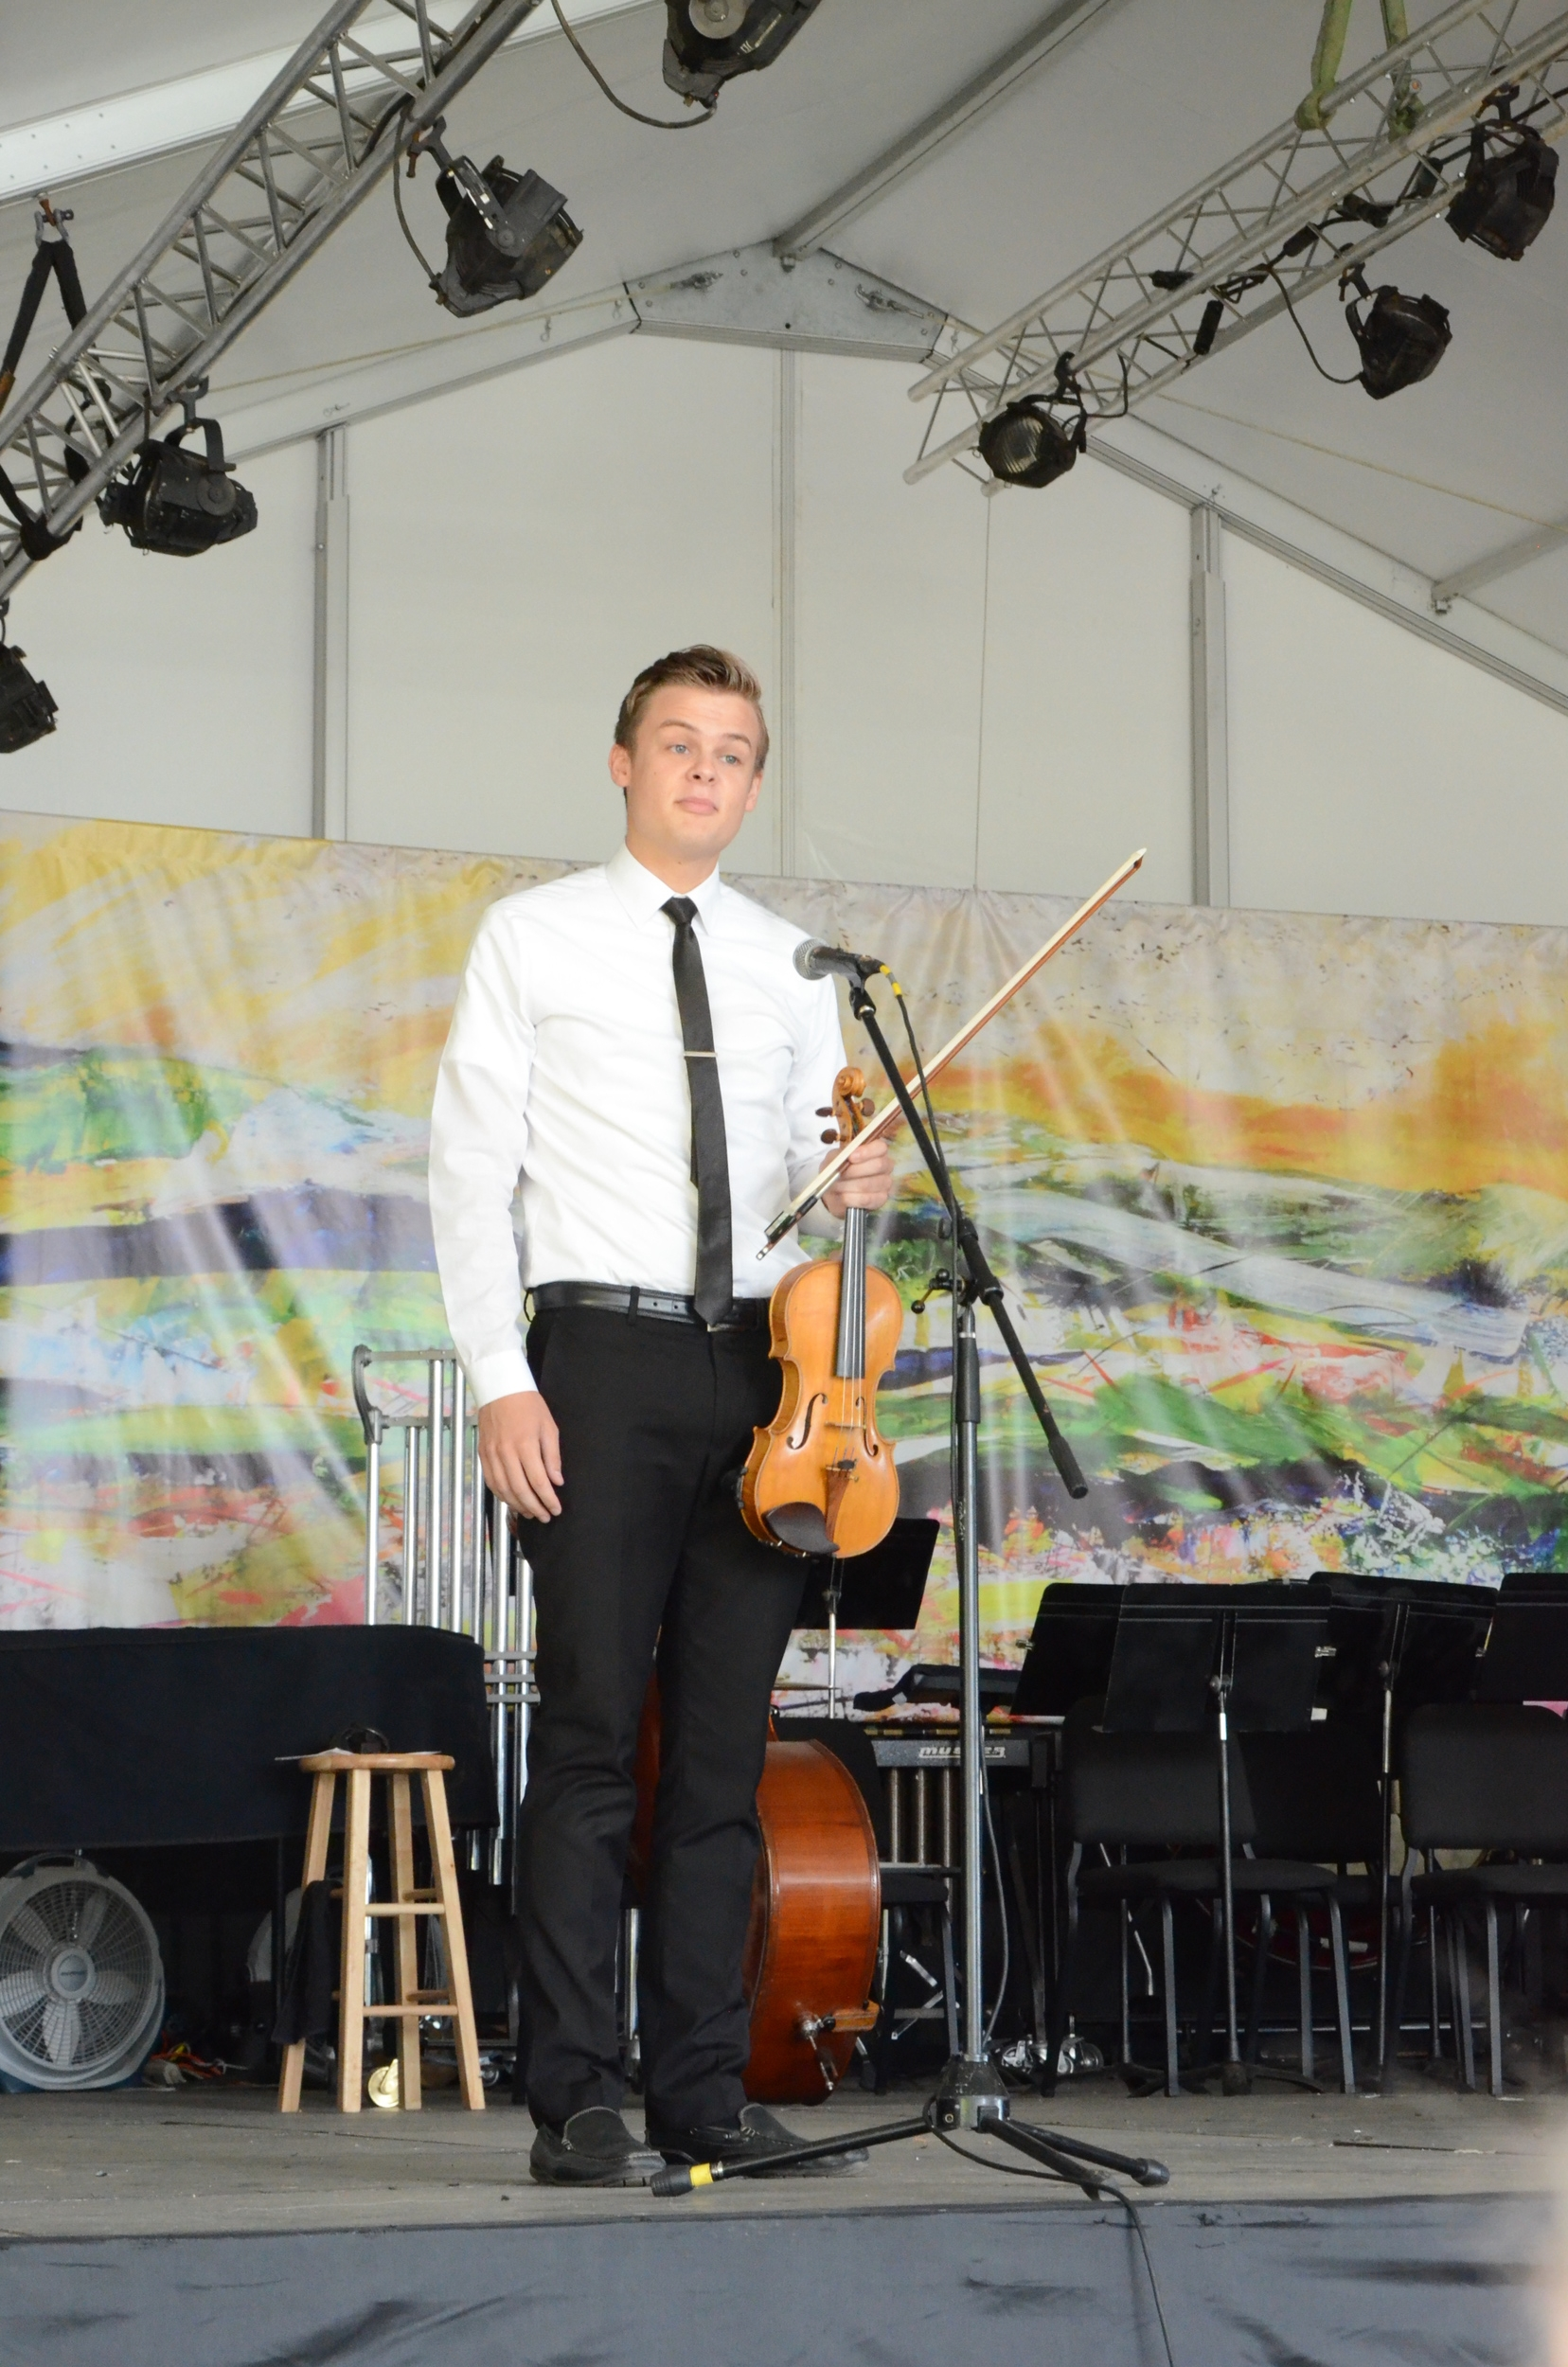 Academy student Walker Konkle introduces his quartet while standing in front of the backdrop.   Photo credit: John Taylor